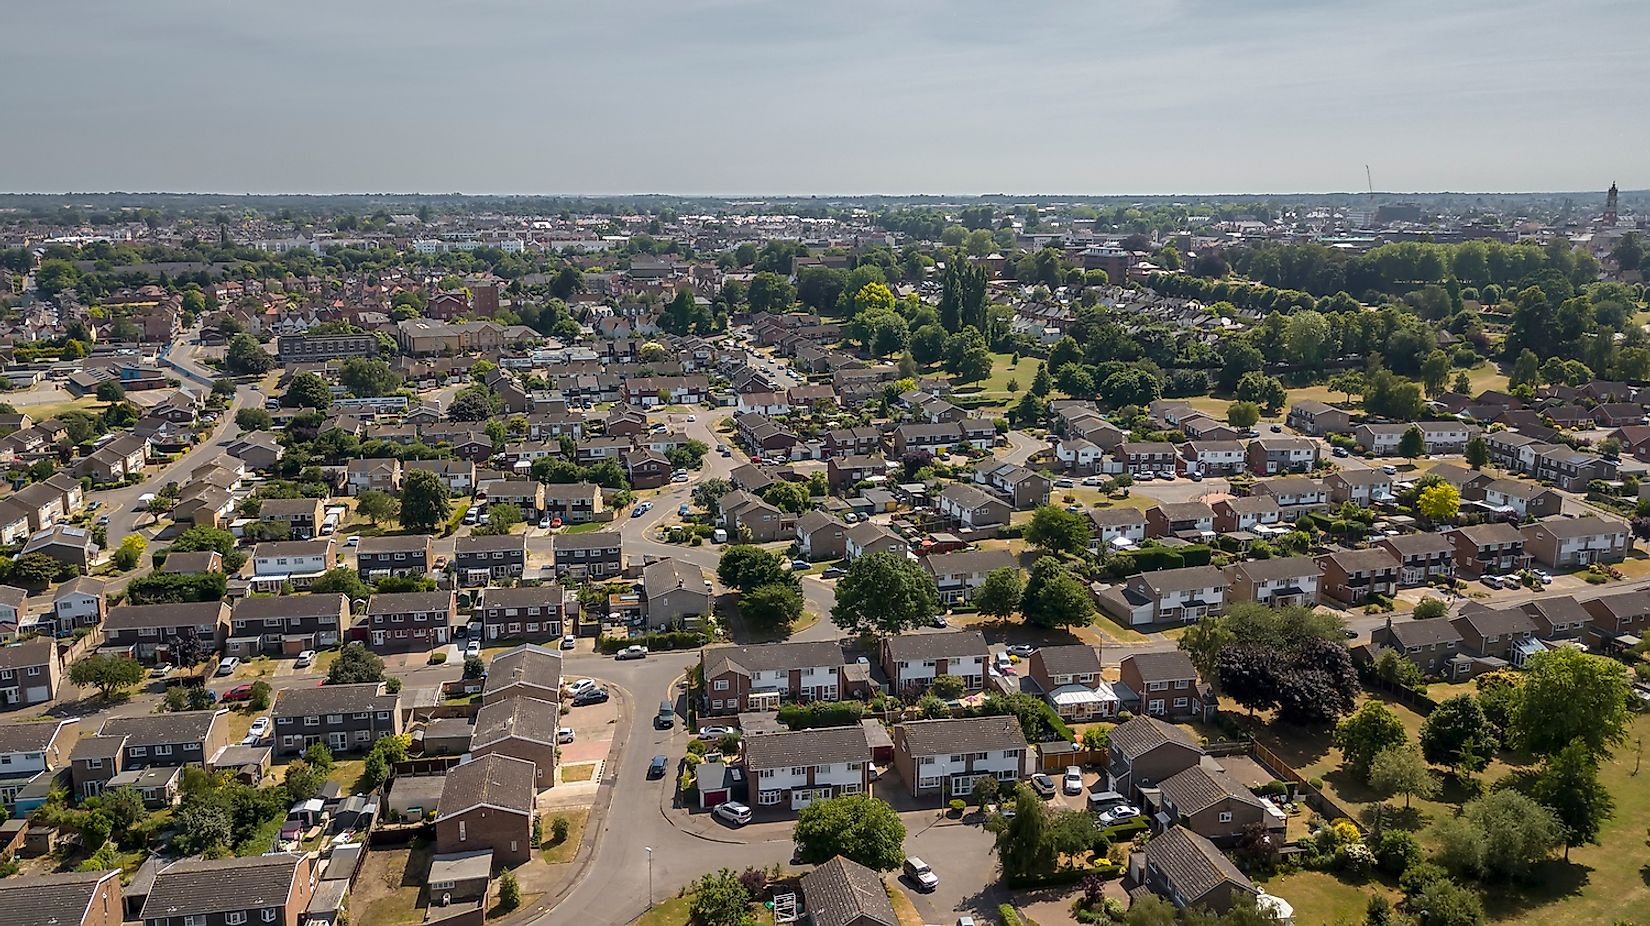 Aerial view of Colchester Riverside suburban residential area, Colchester, Essex, England, UK. Image credit